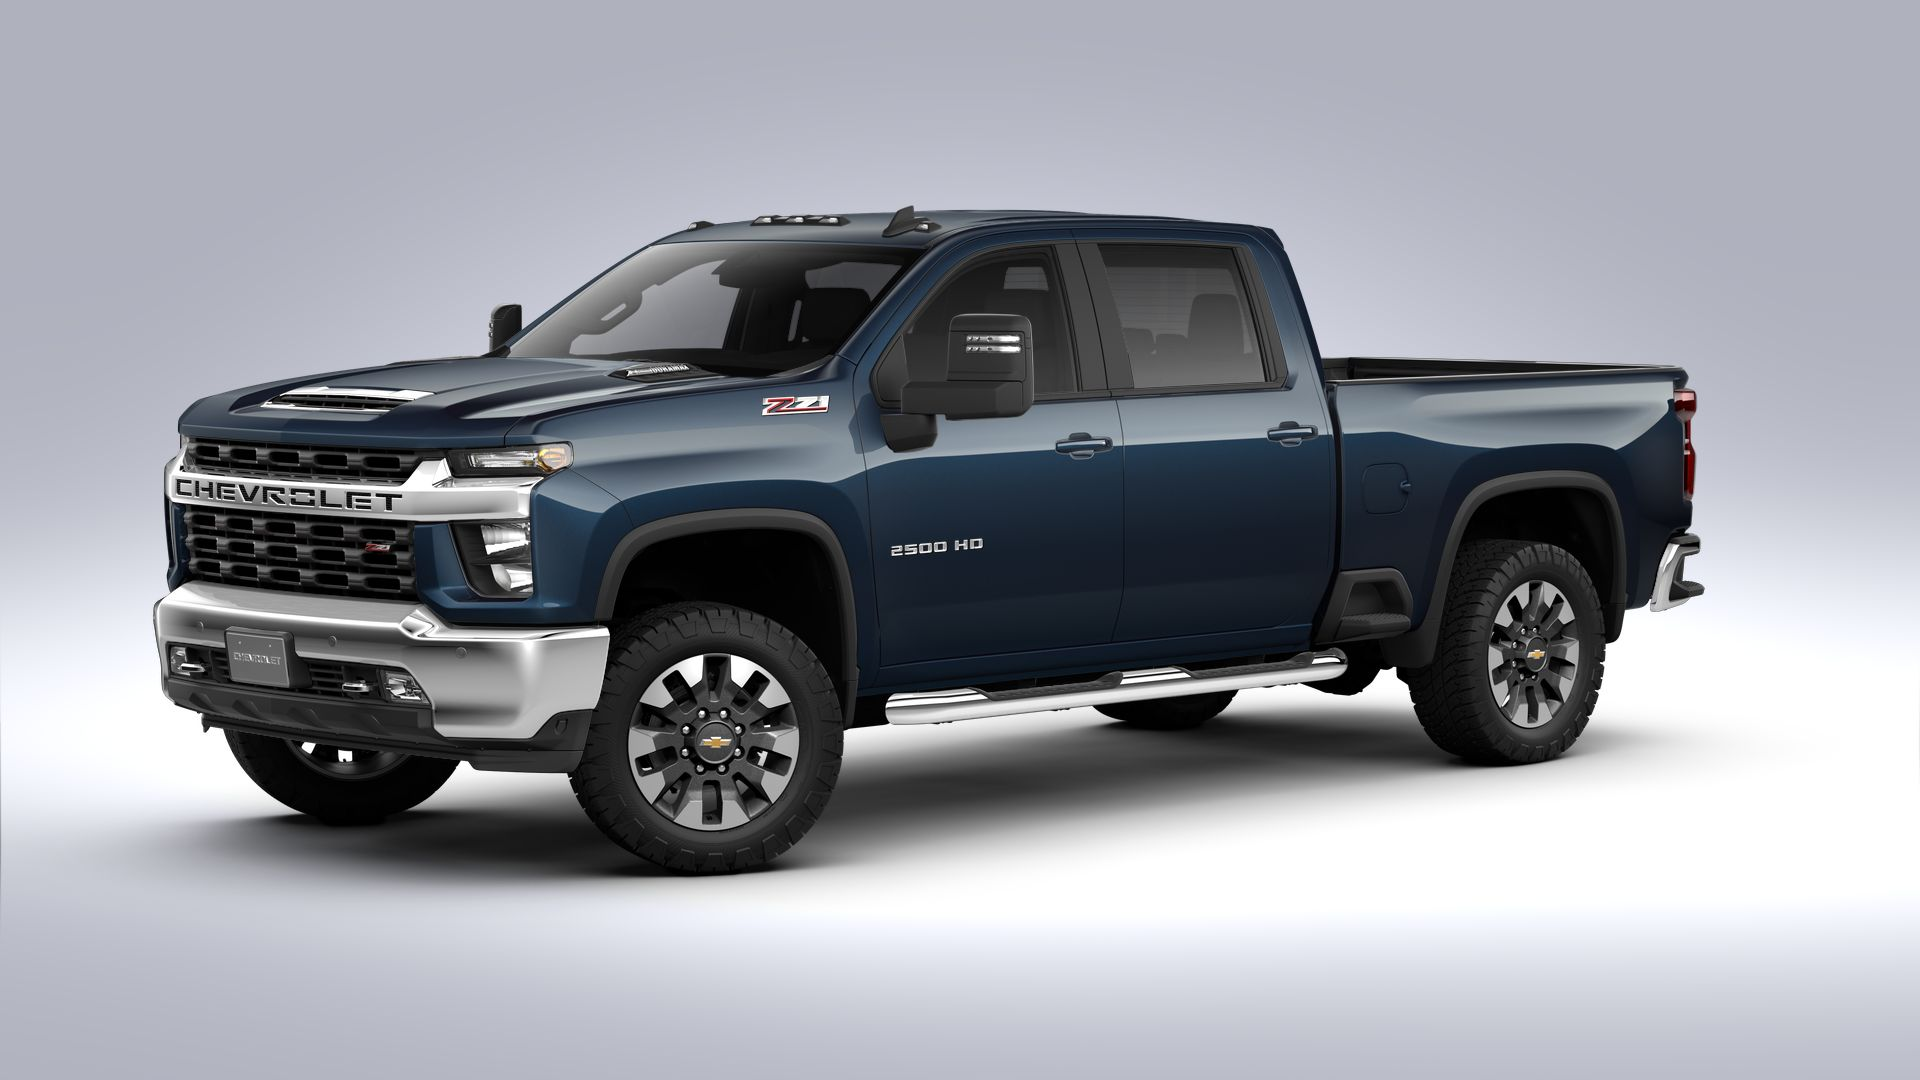 New 2021 Chevrolet Silverado 2500 HD LT